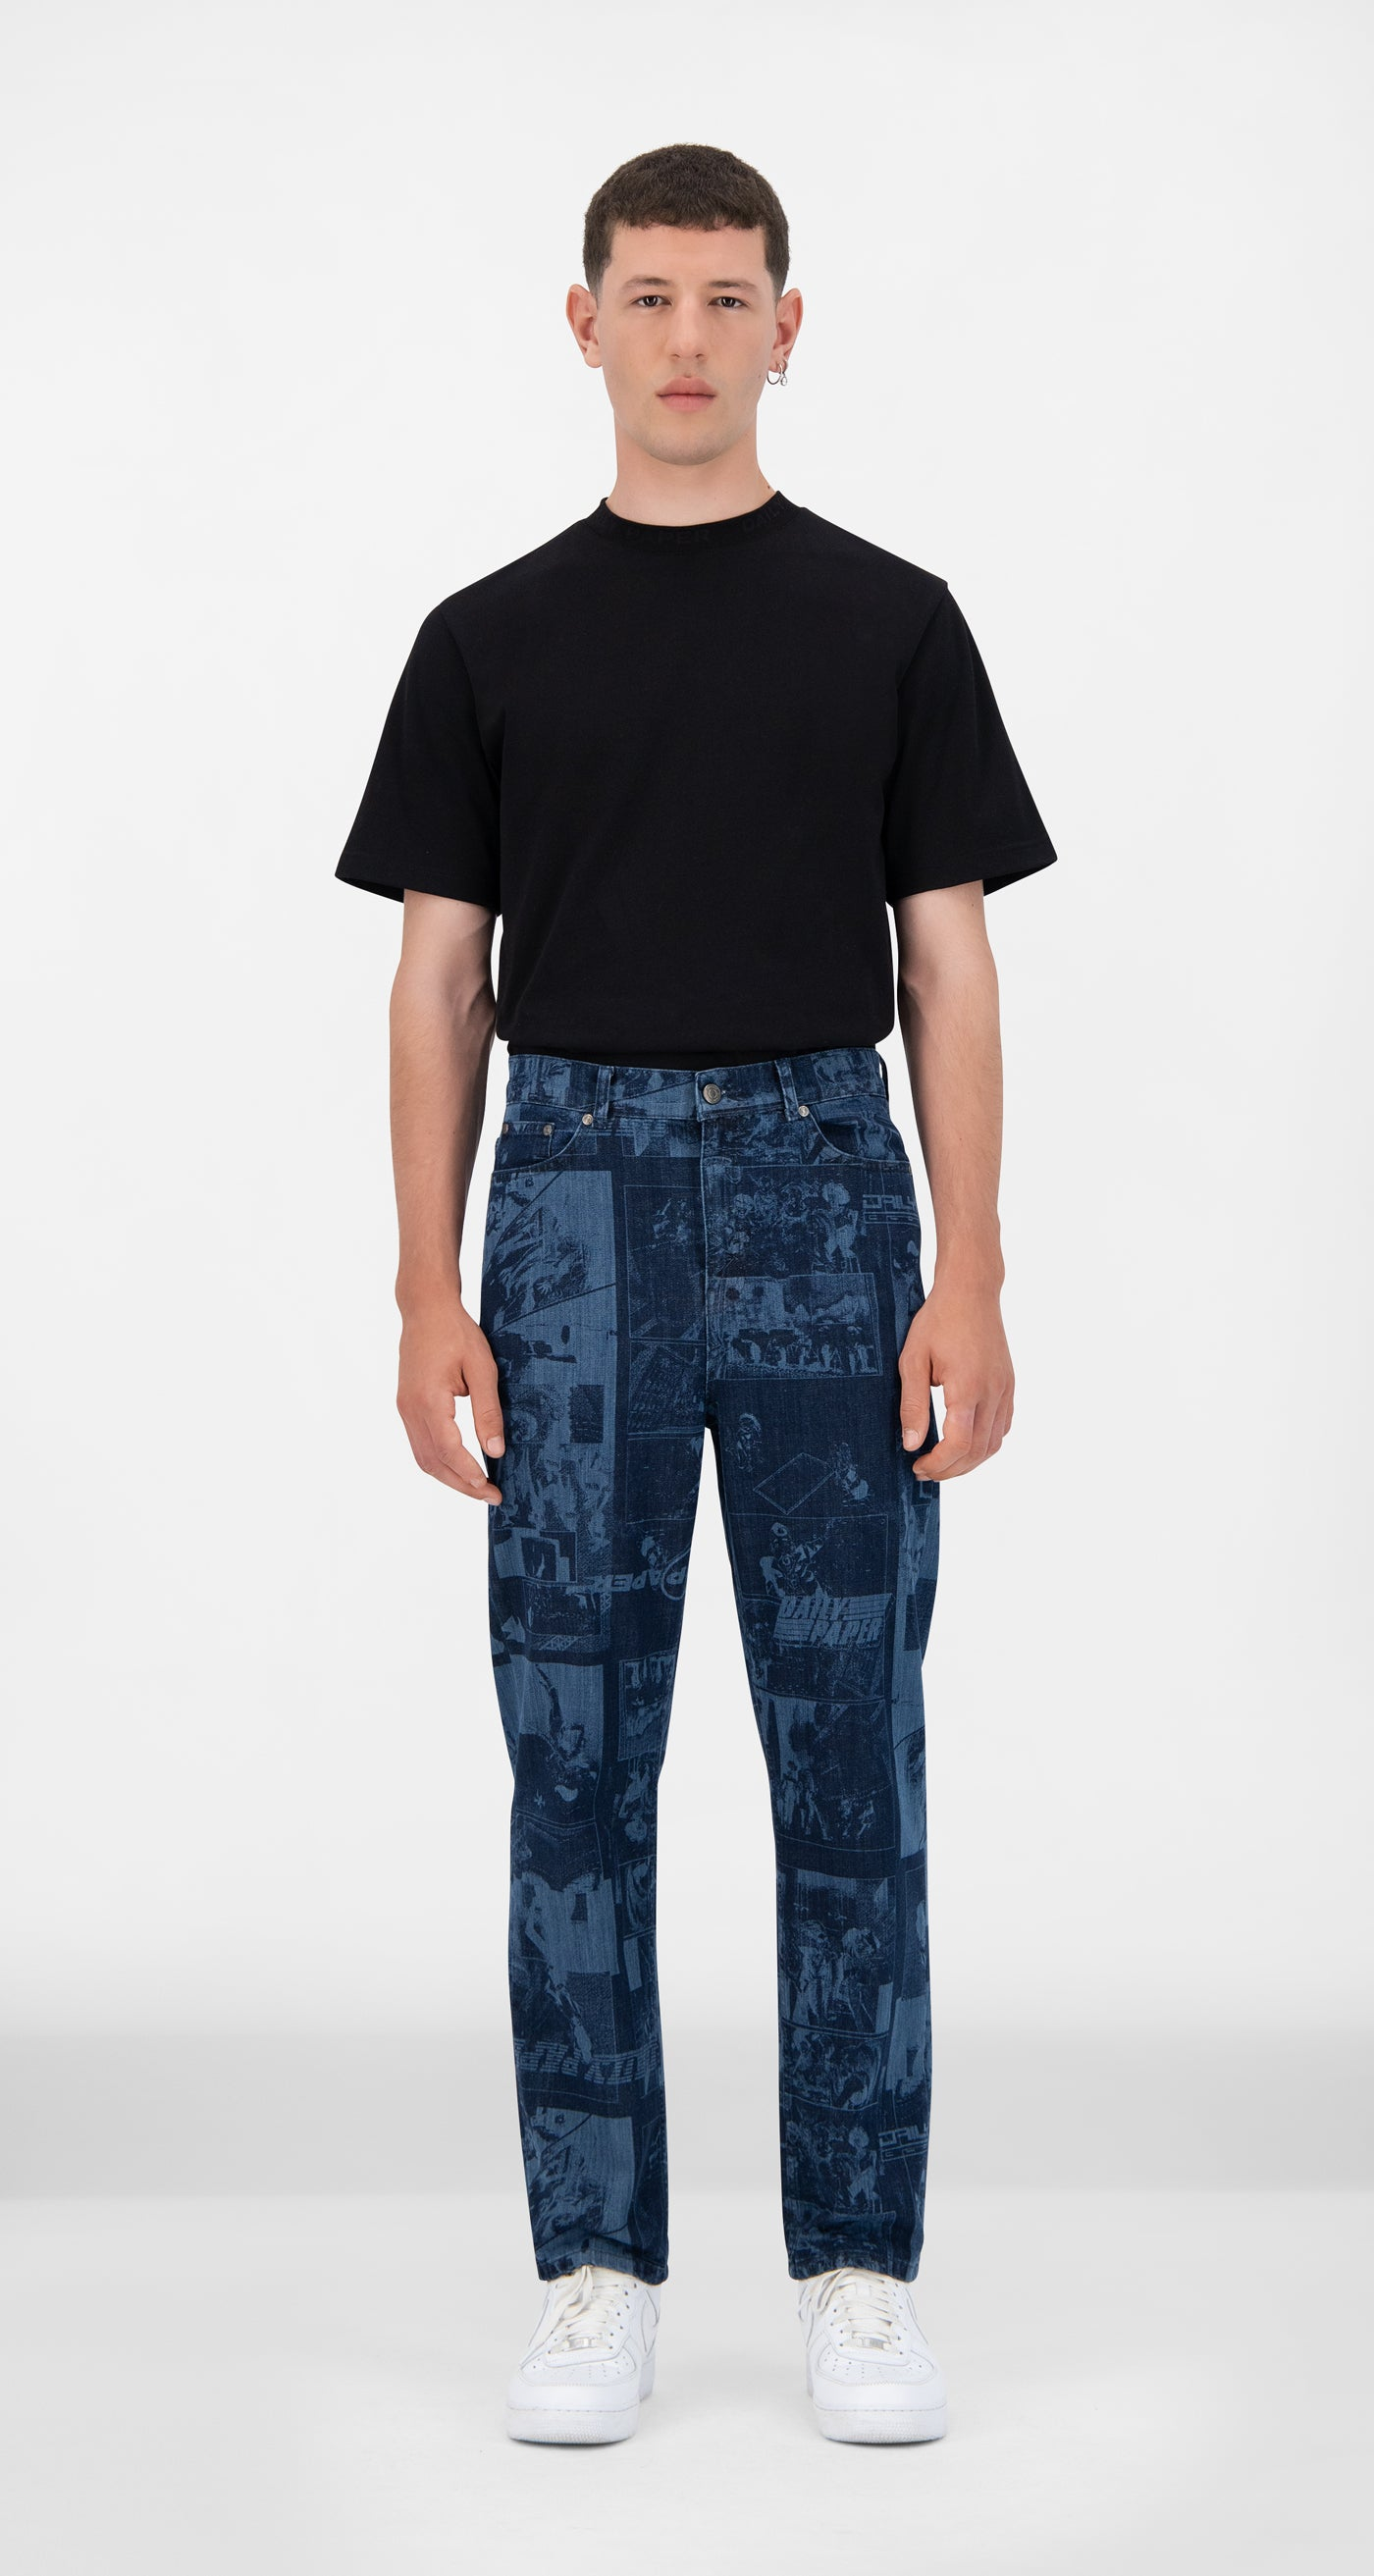 Daily Paper - Lazered Denim Jarzeb Pants - Men Front